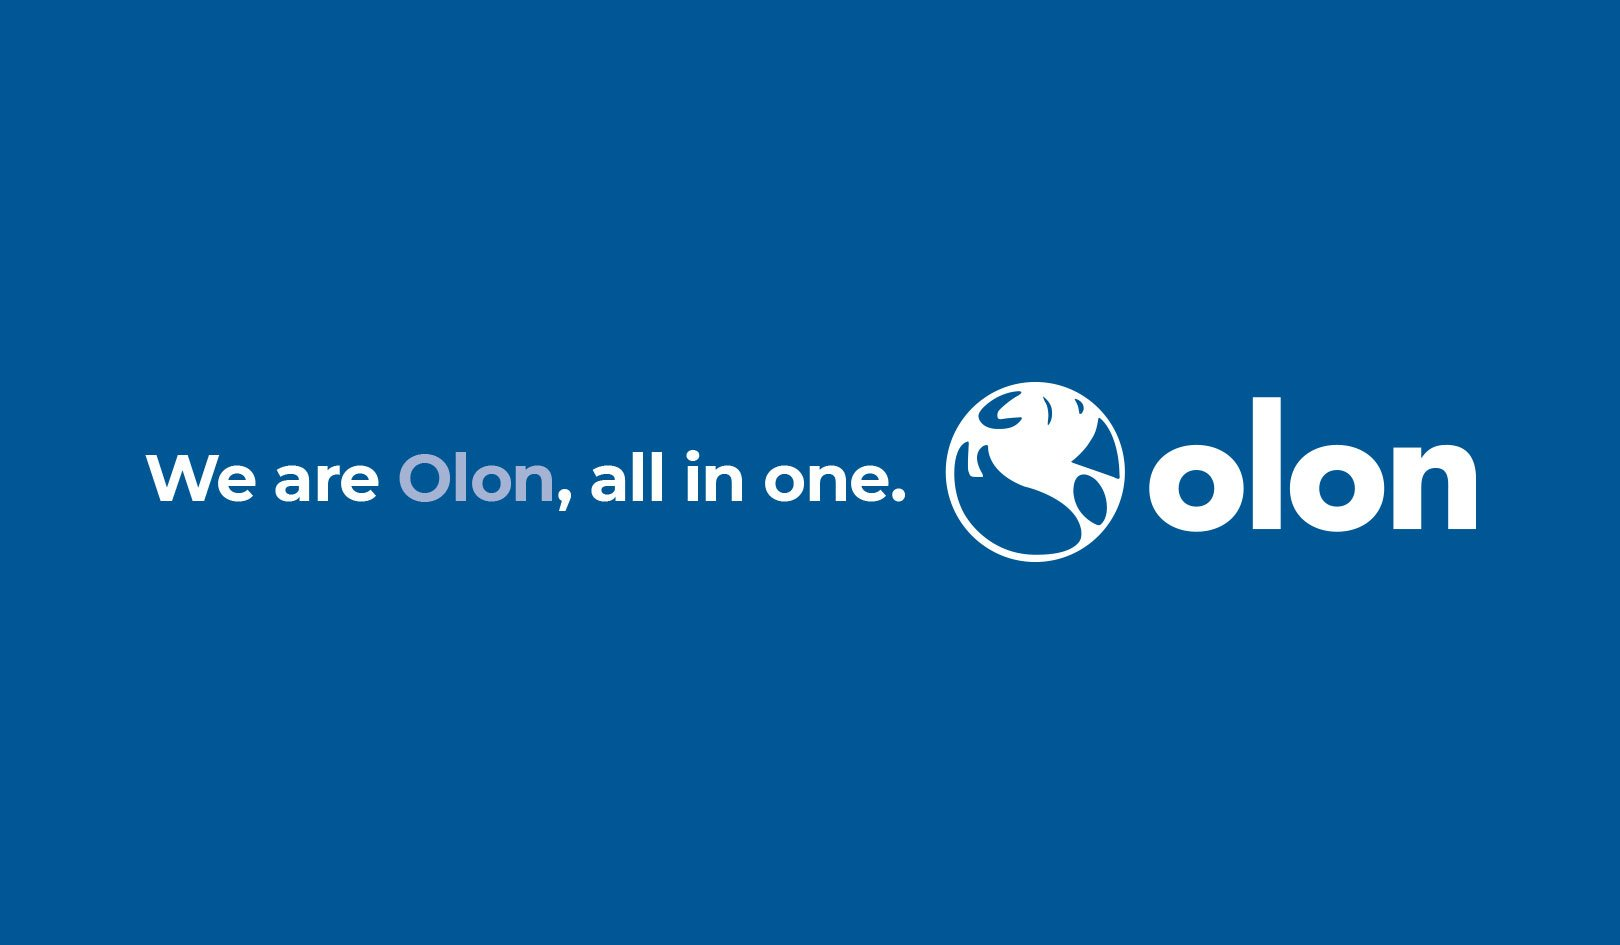 Olon Spa All in one claim